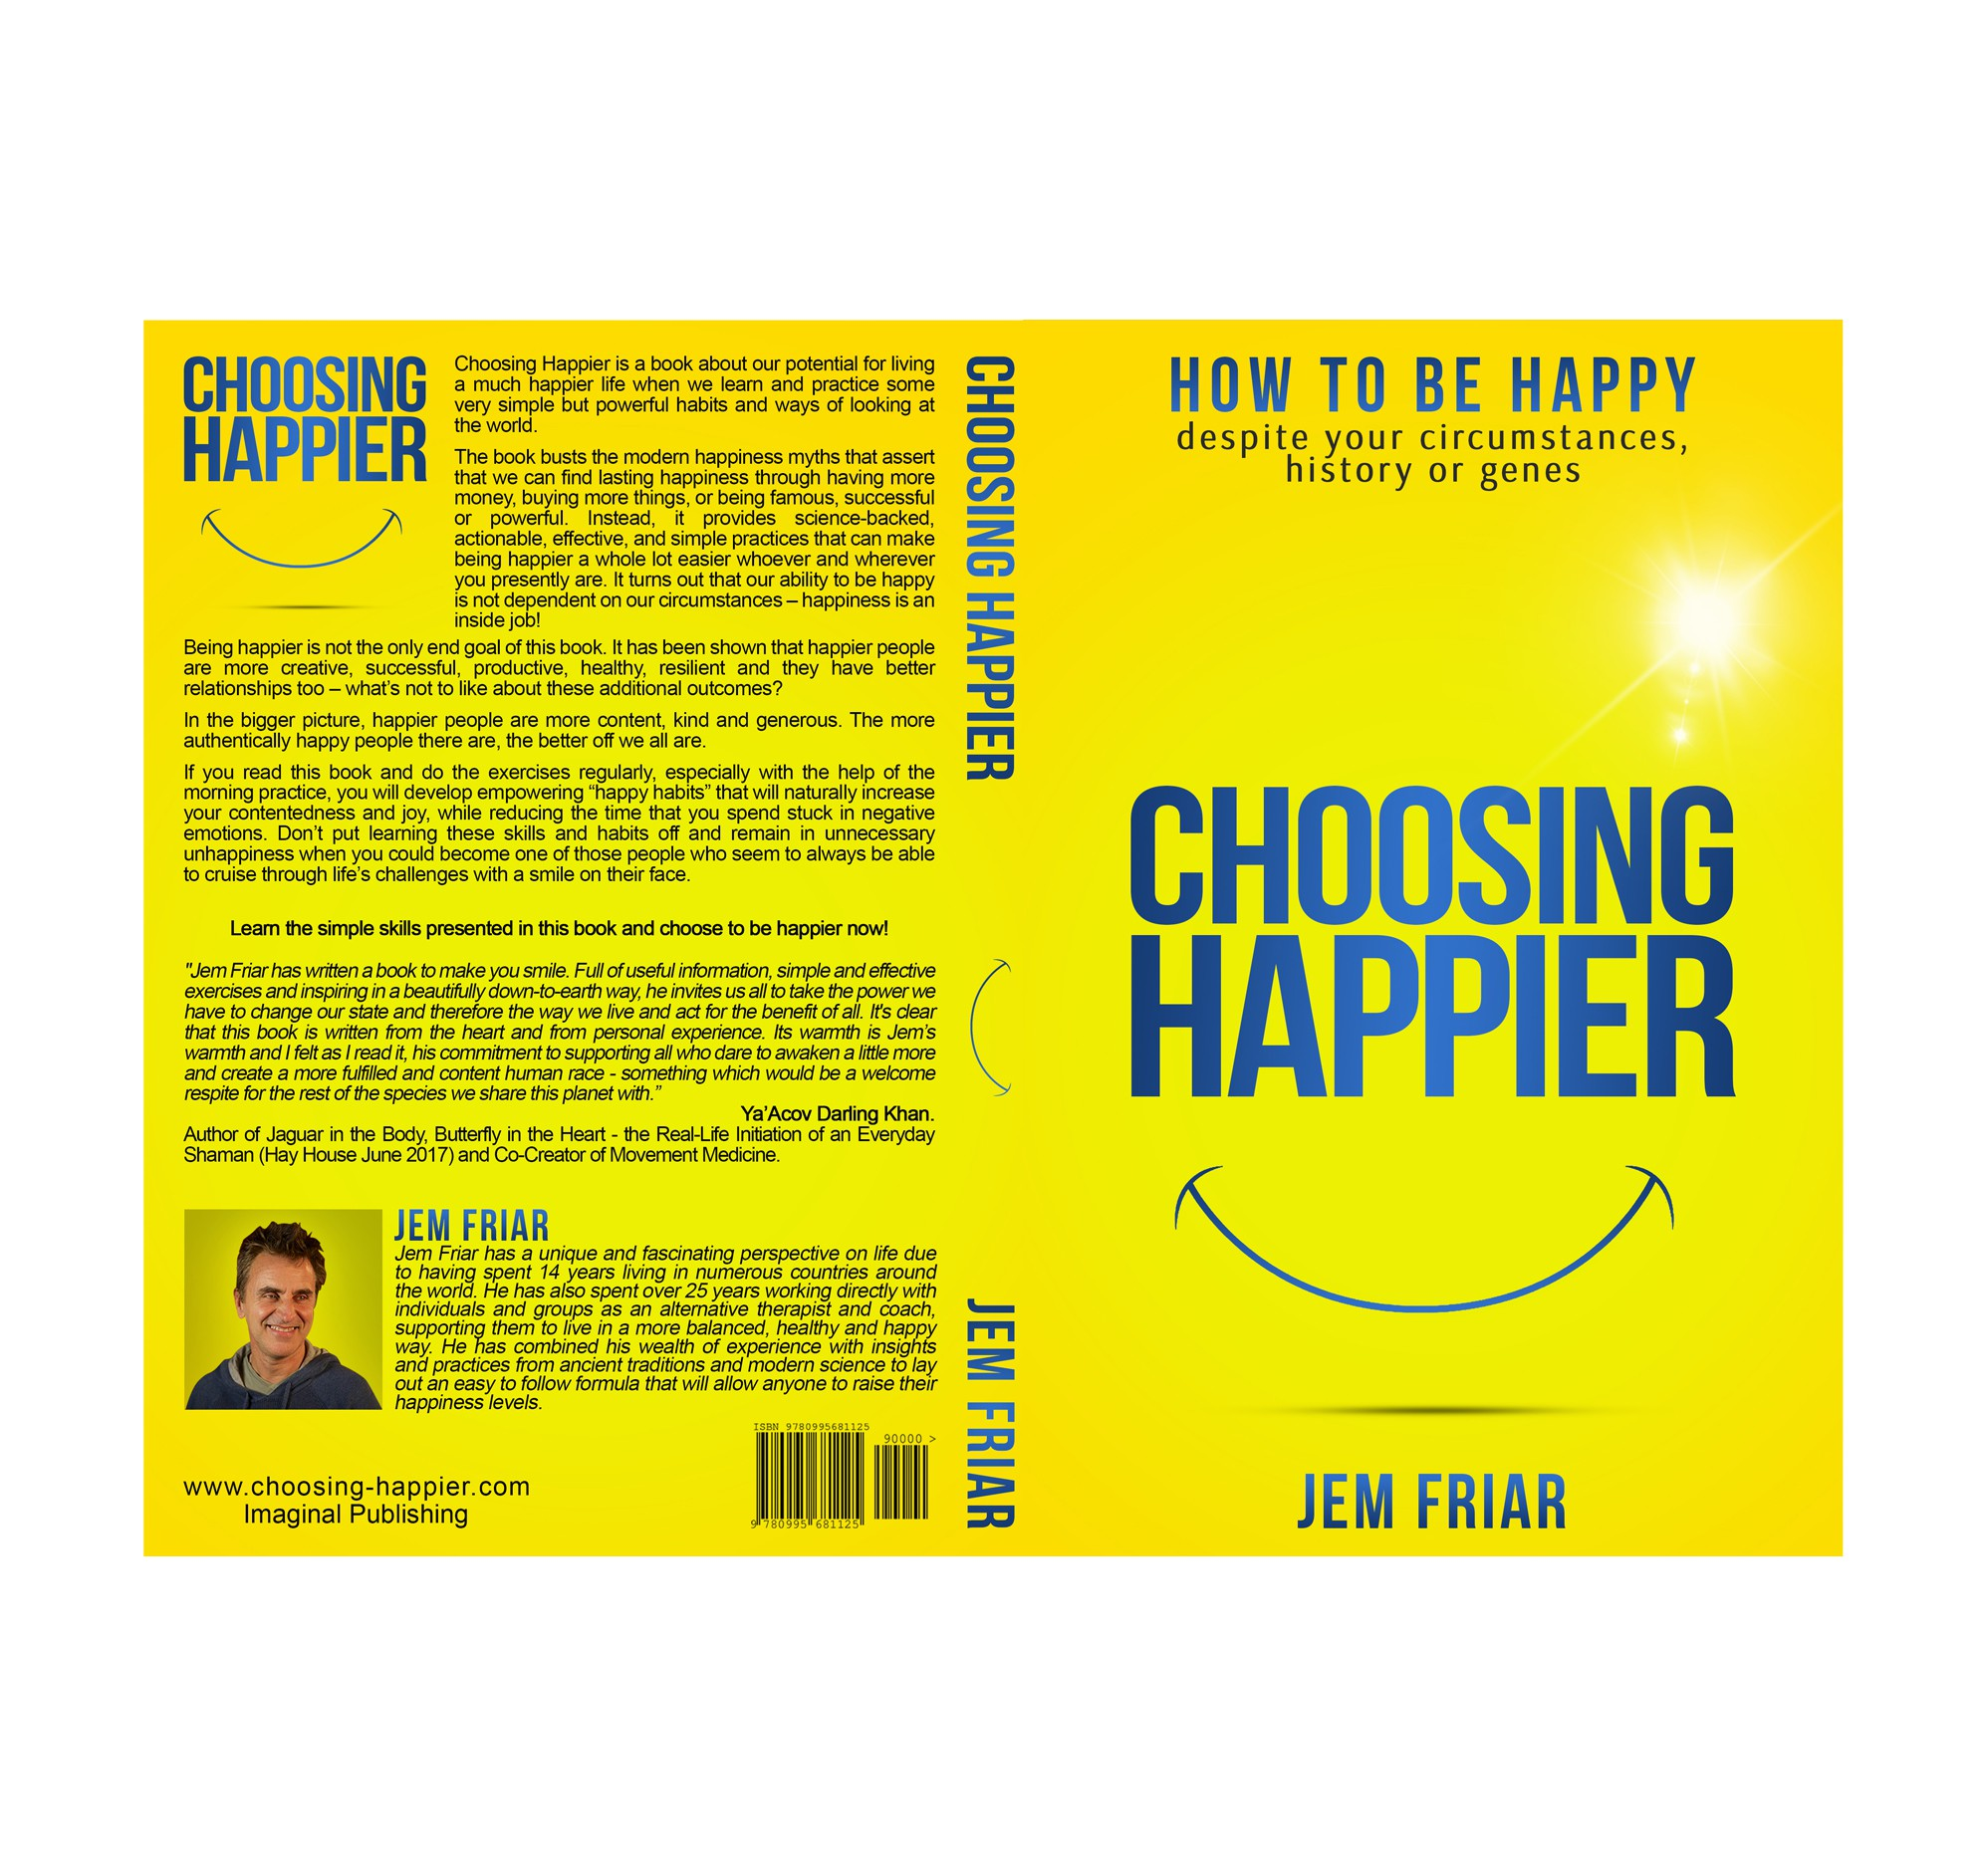 Happiness book needs a simple, uplifting font based cover with a smile.